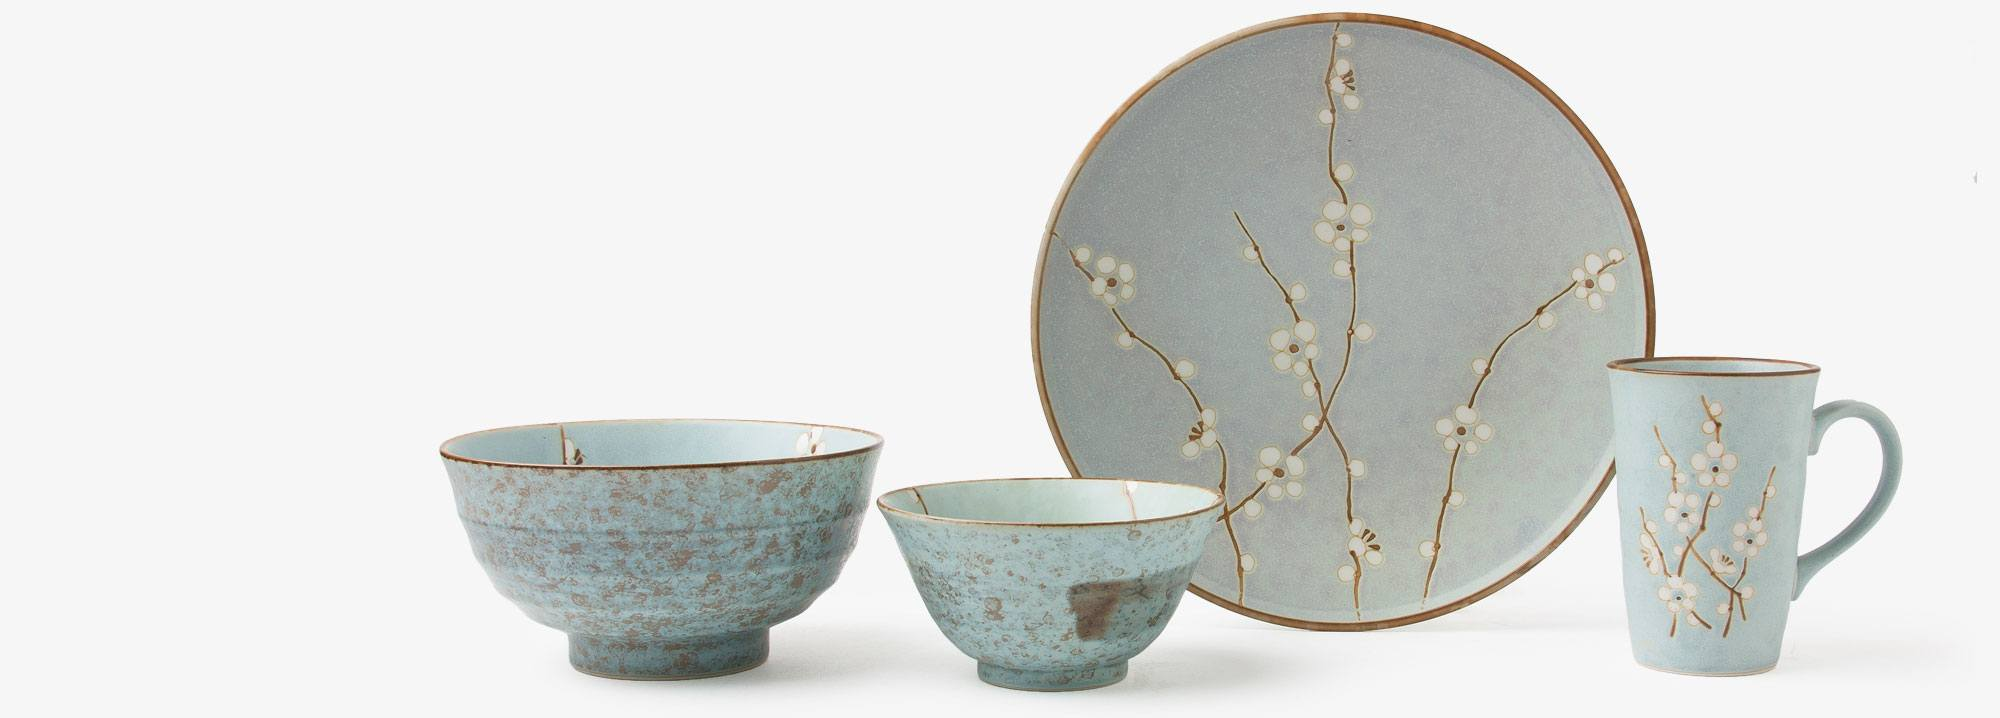 This serenely beautiful platter features a cool blue background and delicate spring blossoms to complement your food. Made in Japan. & Blue Spring Blossoms Dish Collection | Japanese Ceramics | Miya